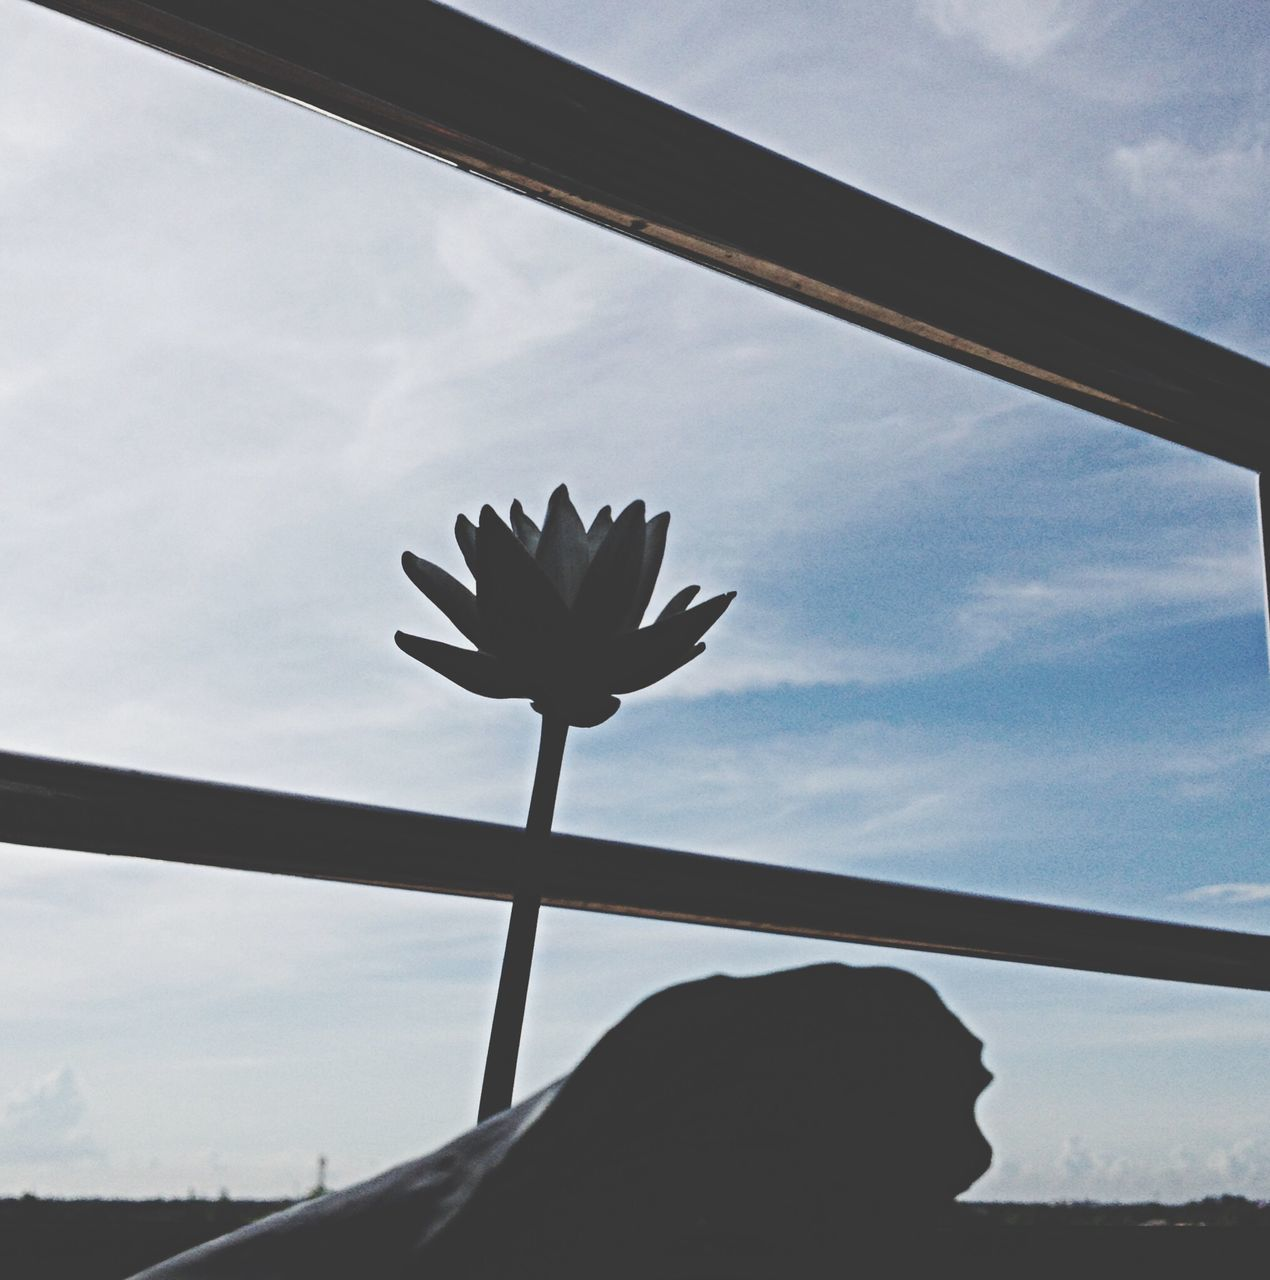 sky, flower, silhouette, low angle view, cloud - sky, outdoors, day, nature, beauty in nature, one person, close-up